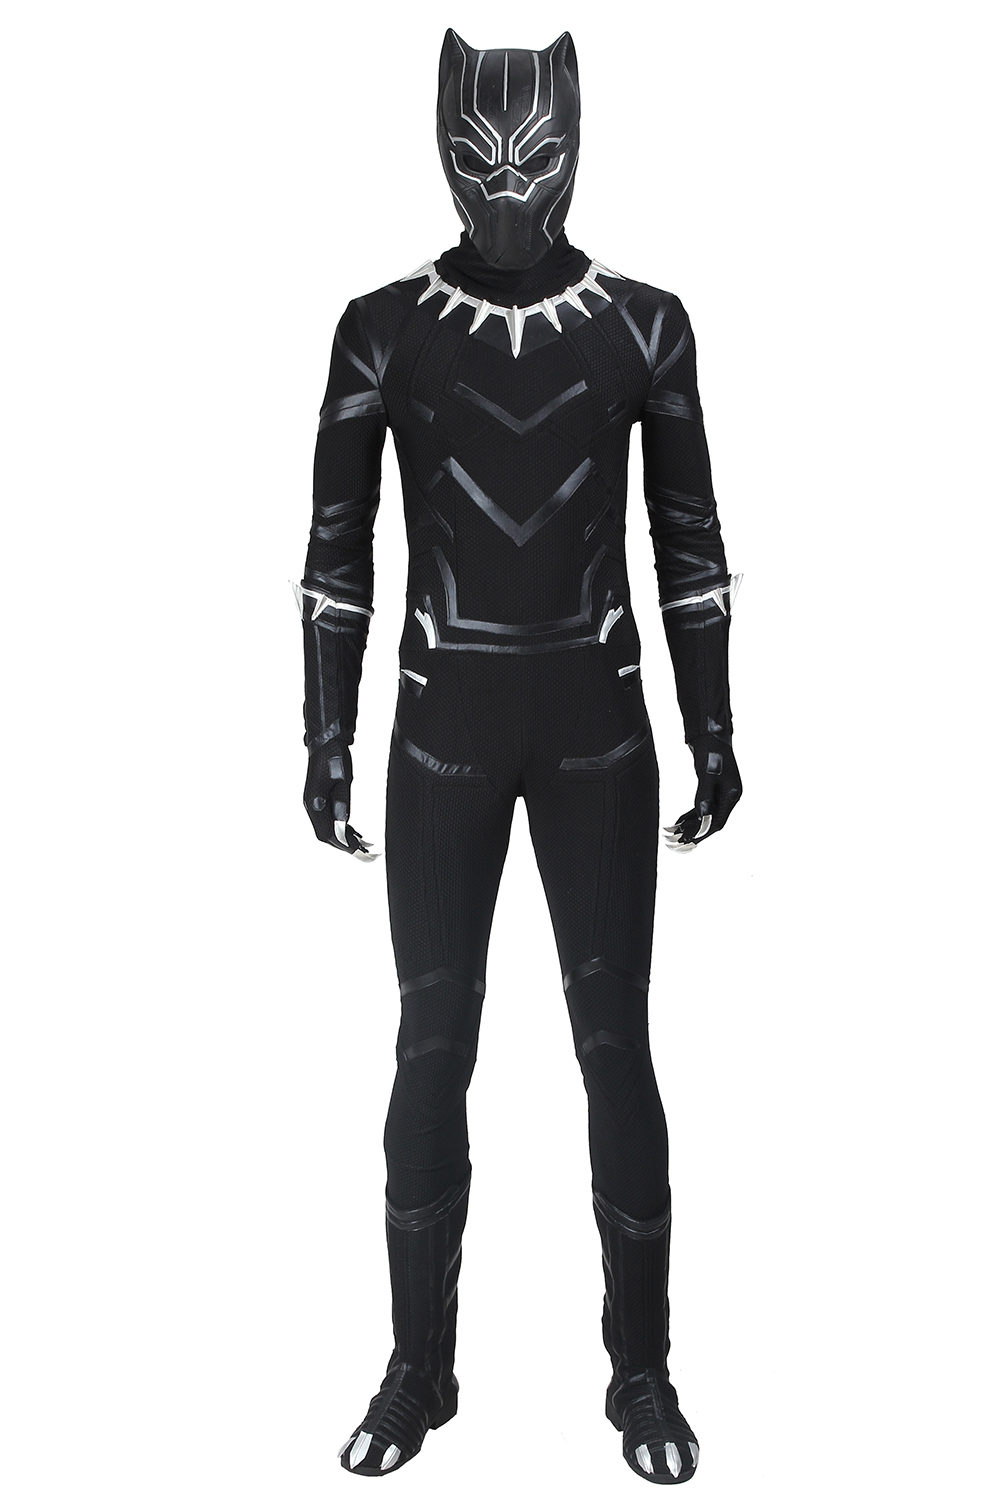 Marvel 2018 Black Panther Tu0026#39;Challa Outfit Whole Set Cosplay Costume Uniform Suit   eBay